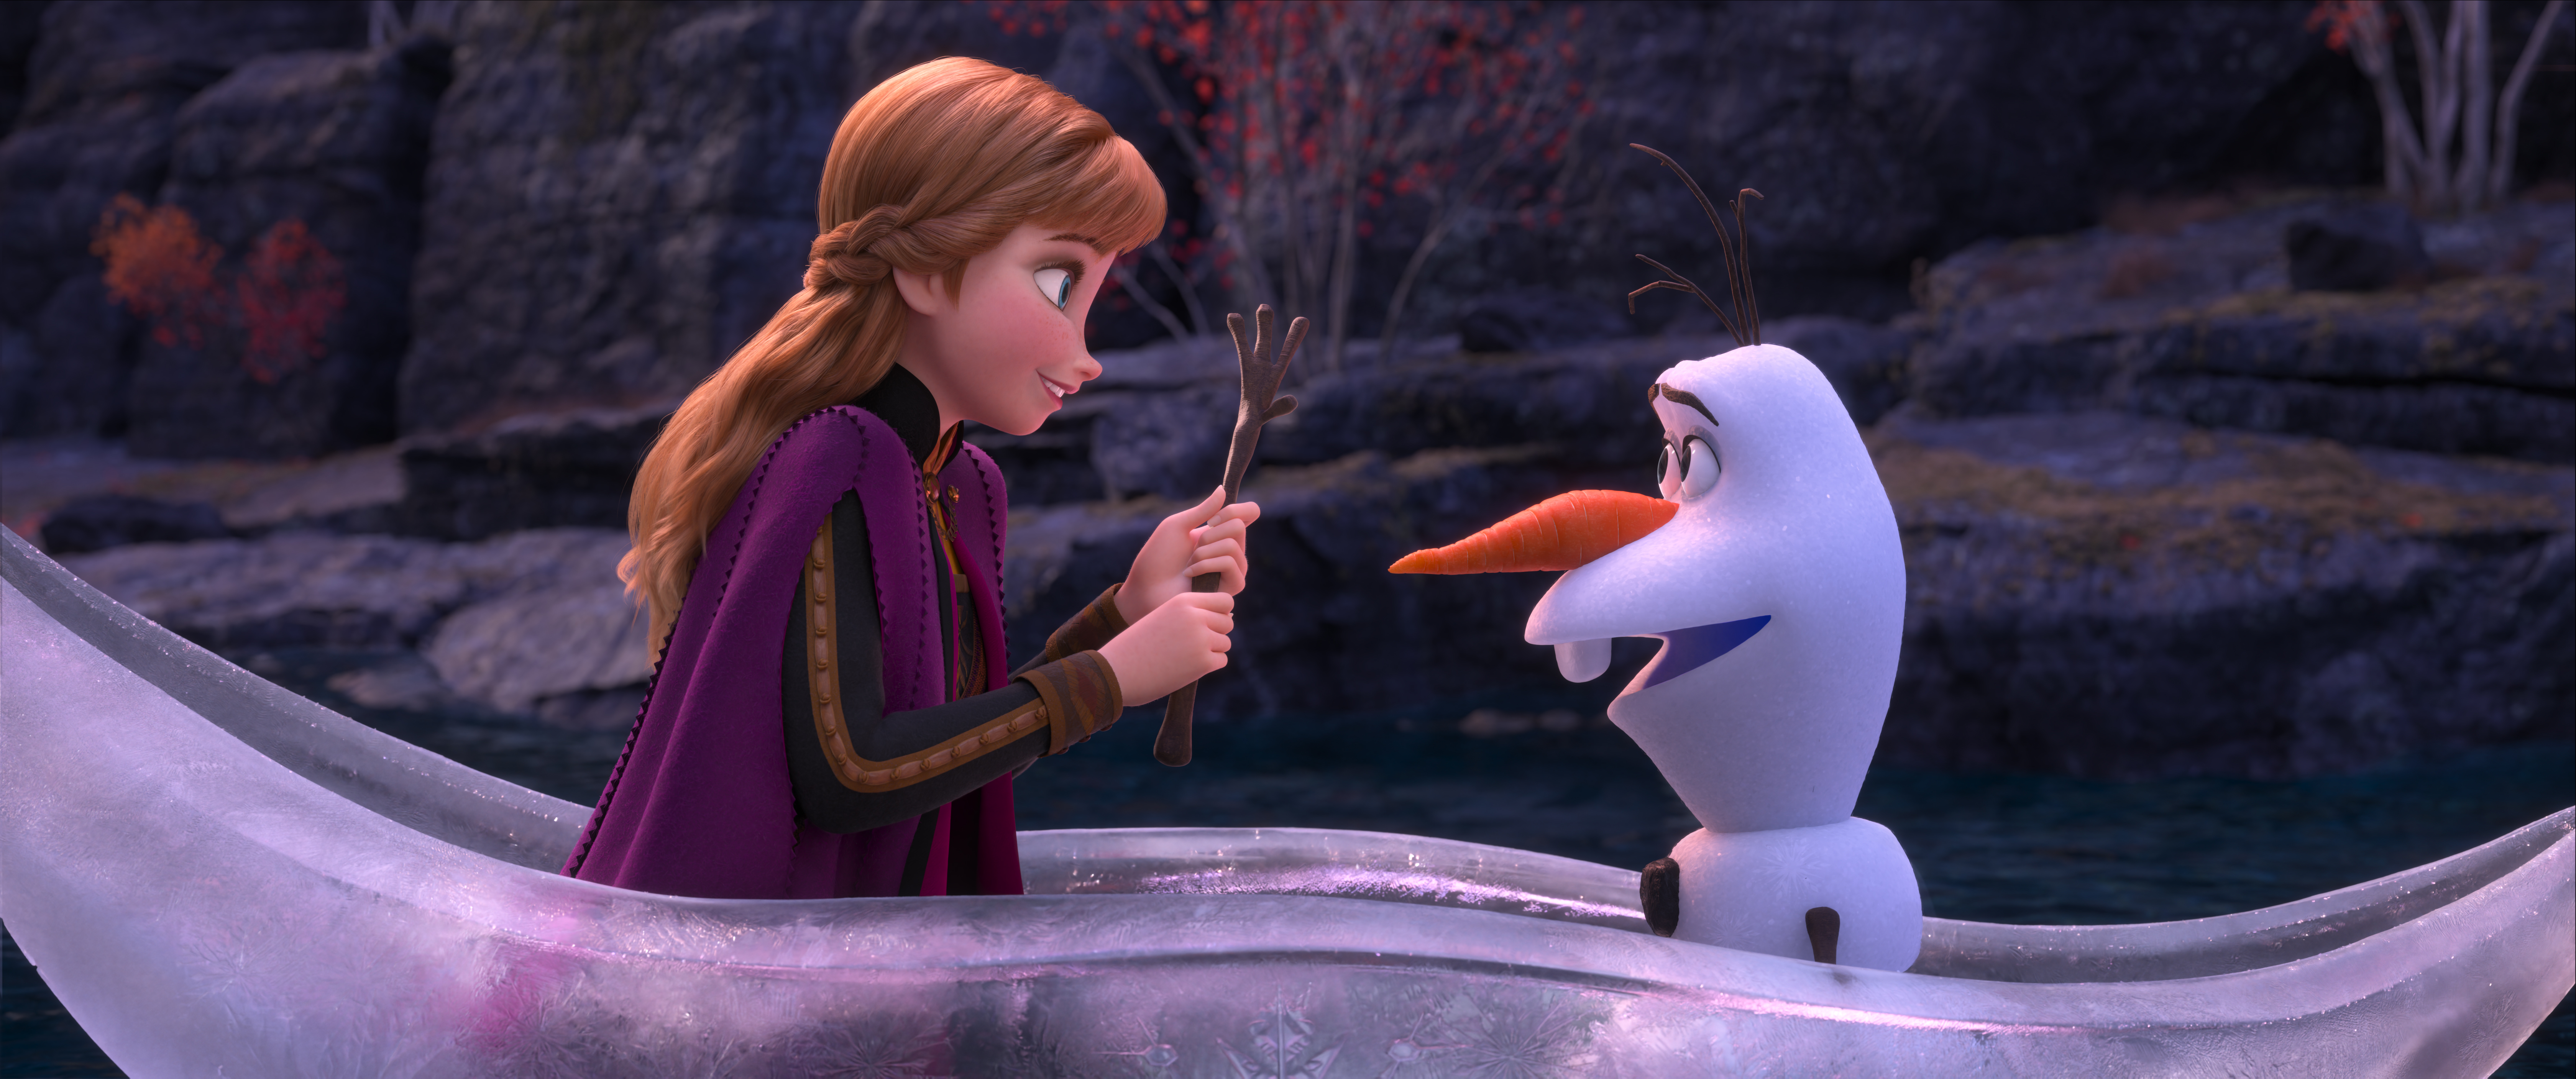 Frozen 2 trailer released June 11 Anna and Olaf in glass canoe